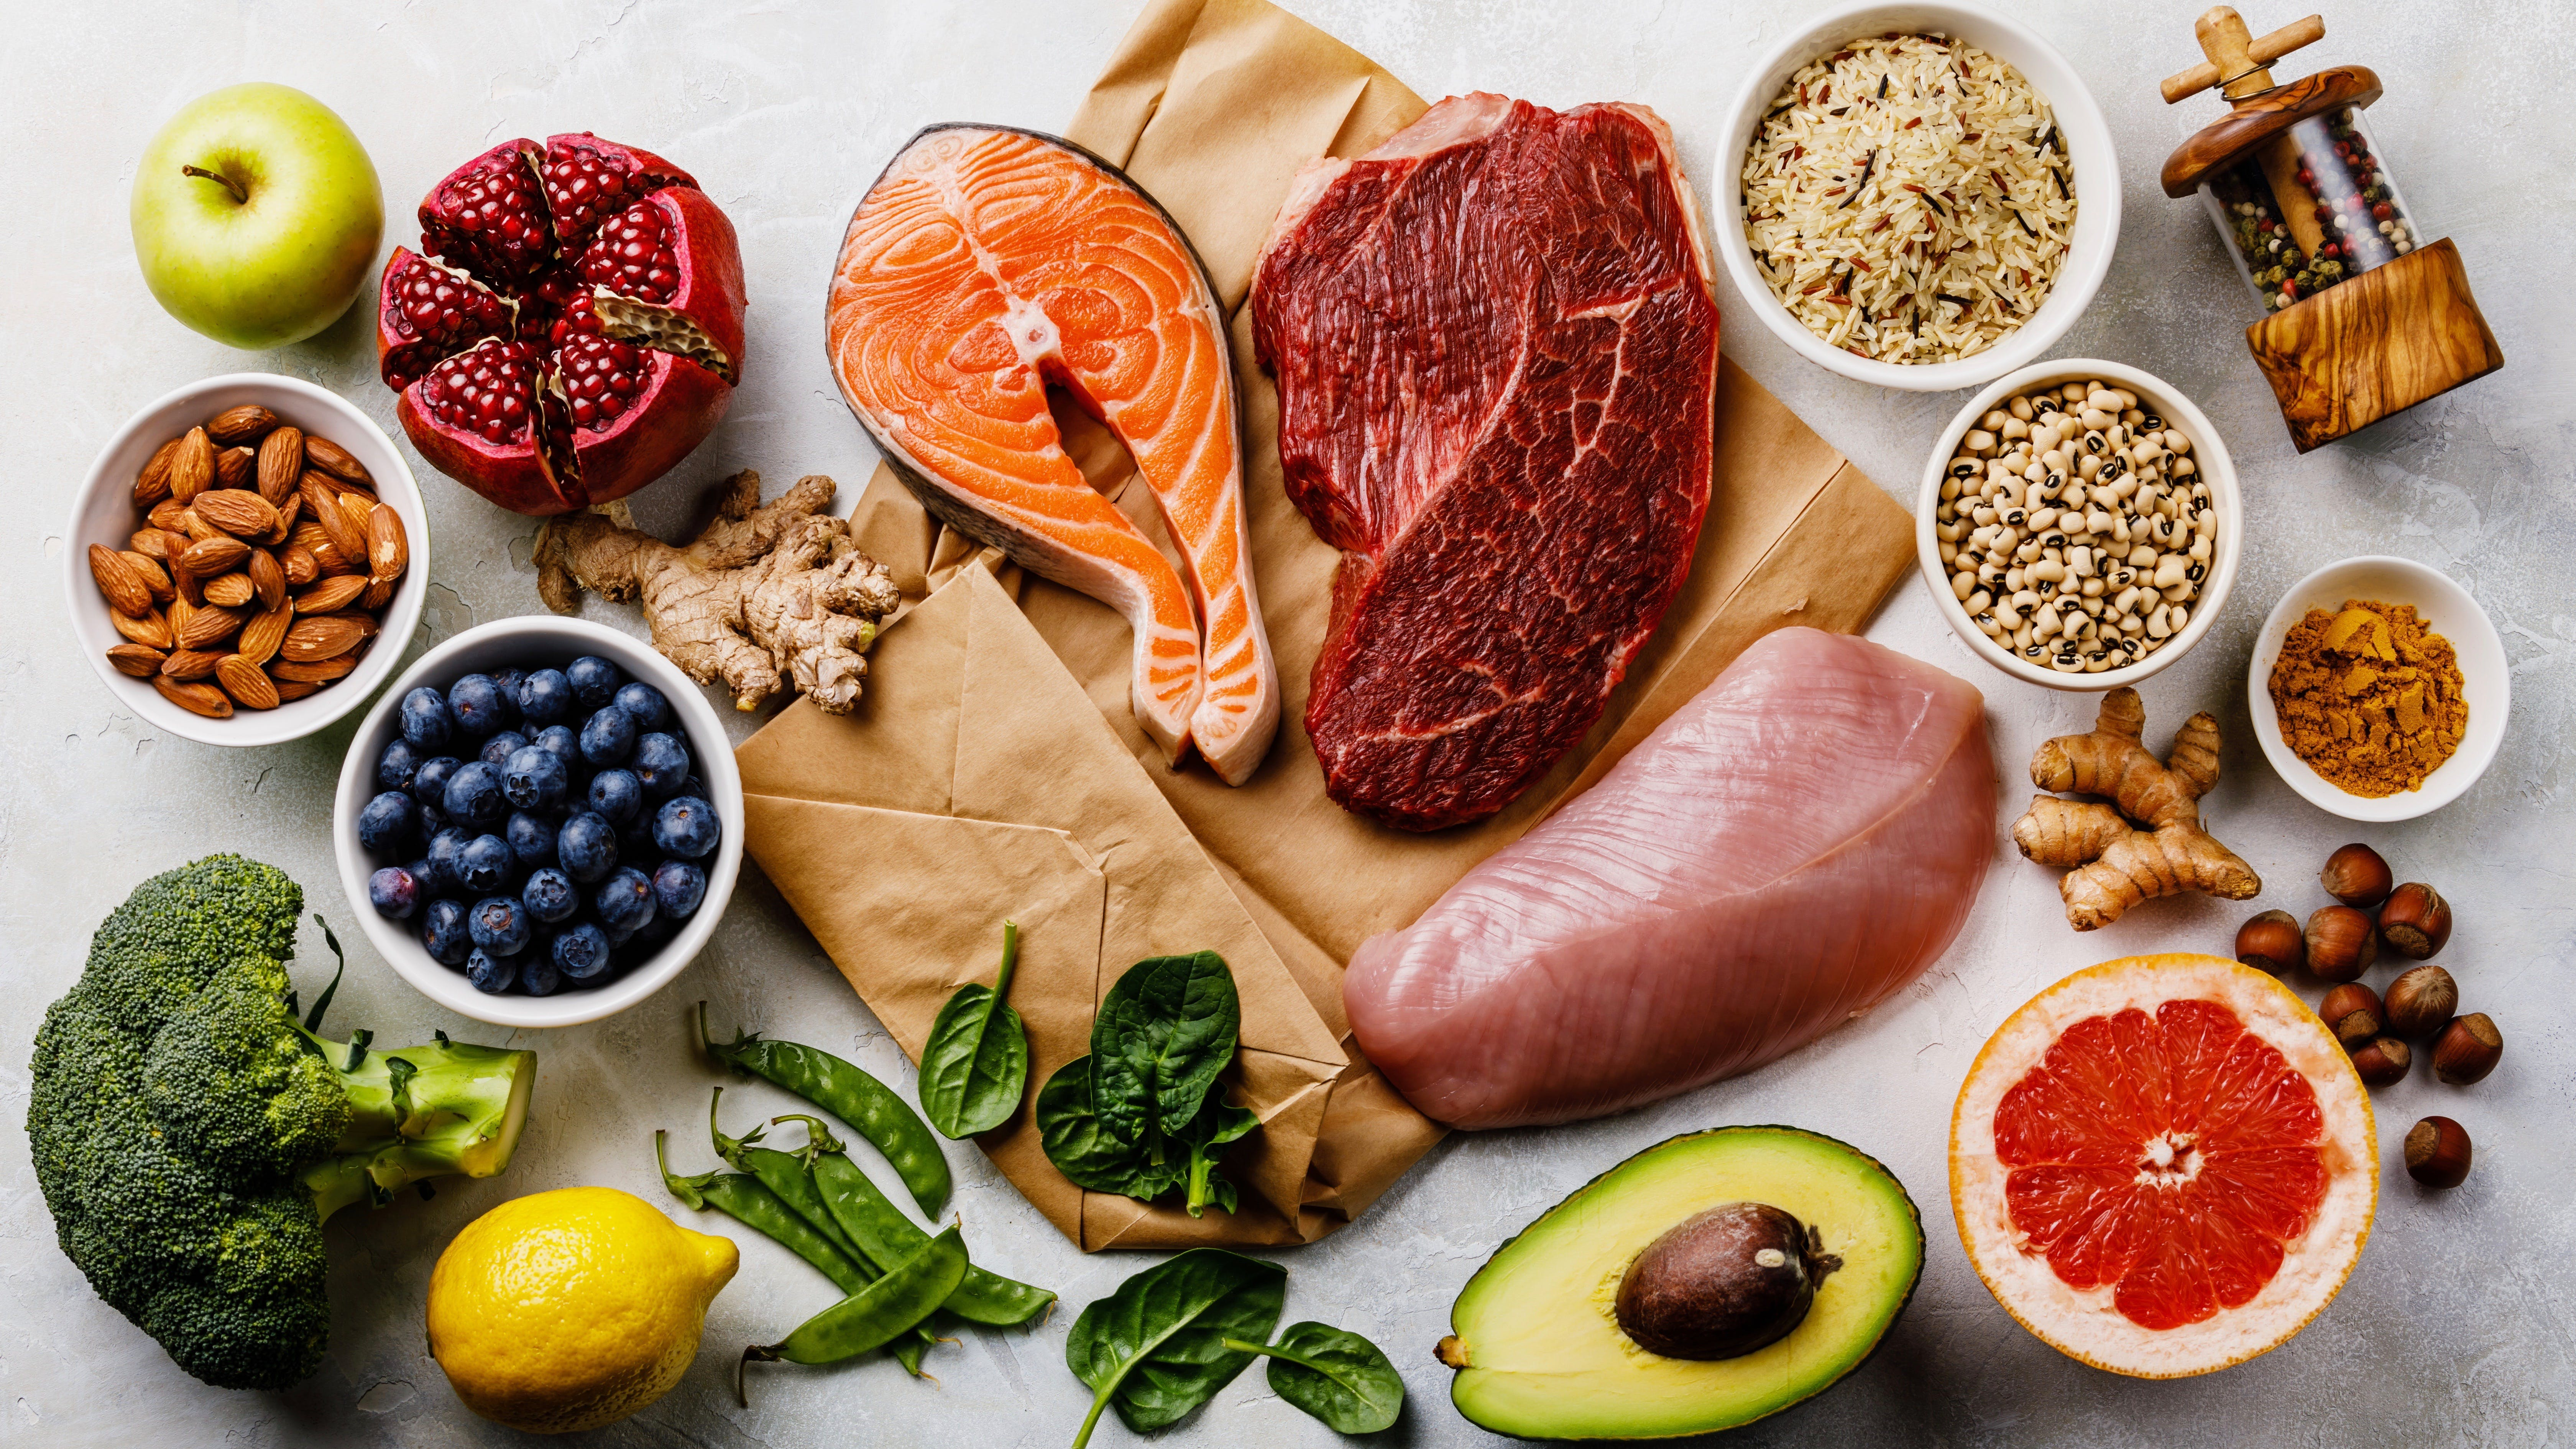 How much protein should you eat for a longer life?